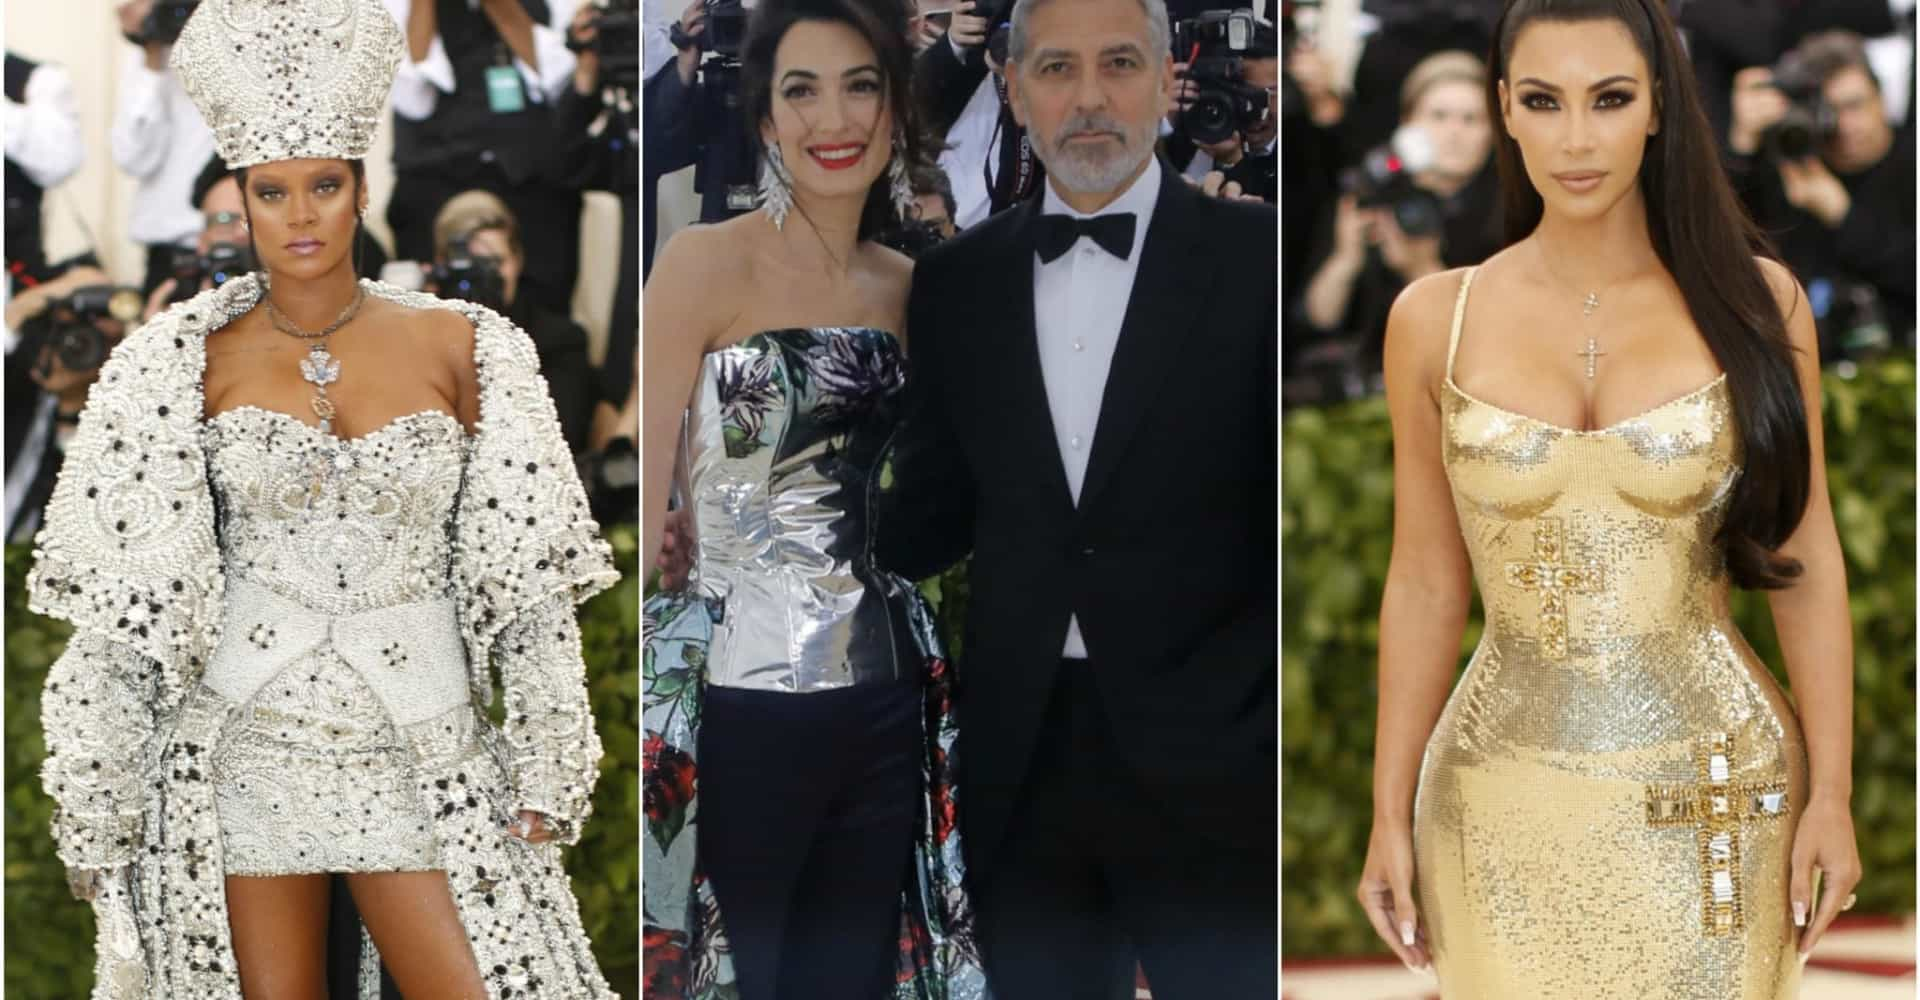 Met Gala 2018: the most creative looks from the event